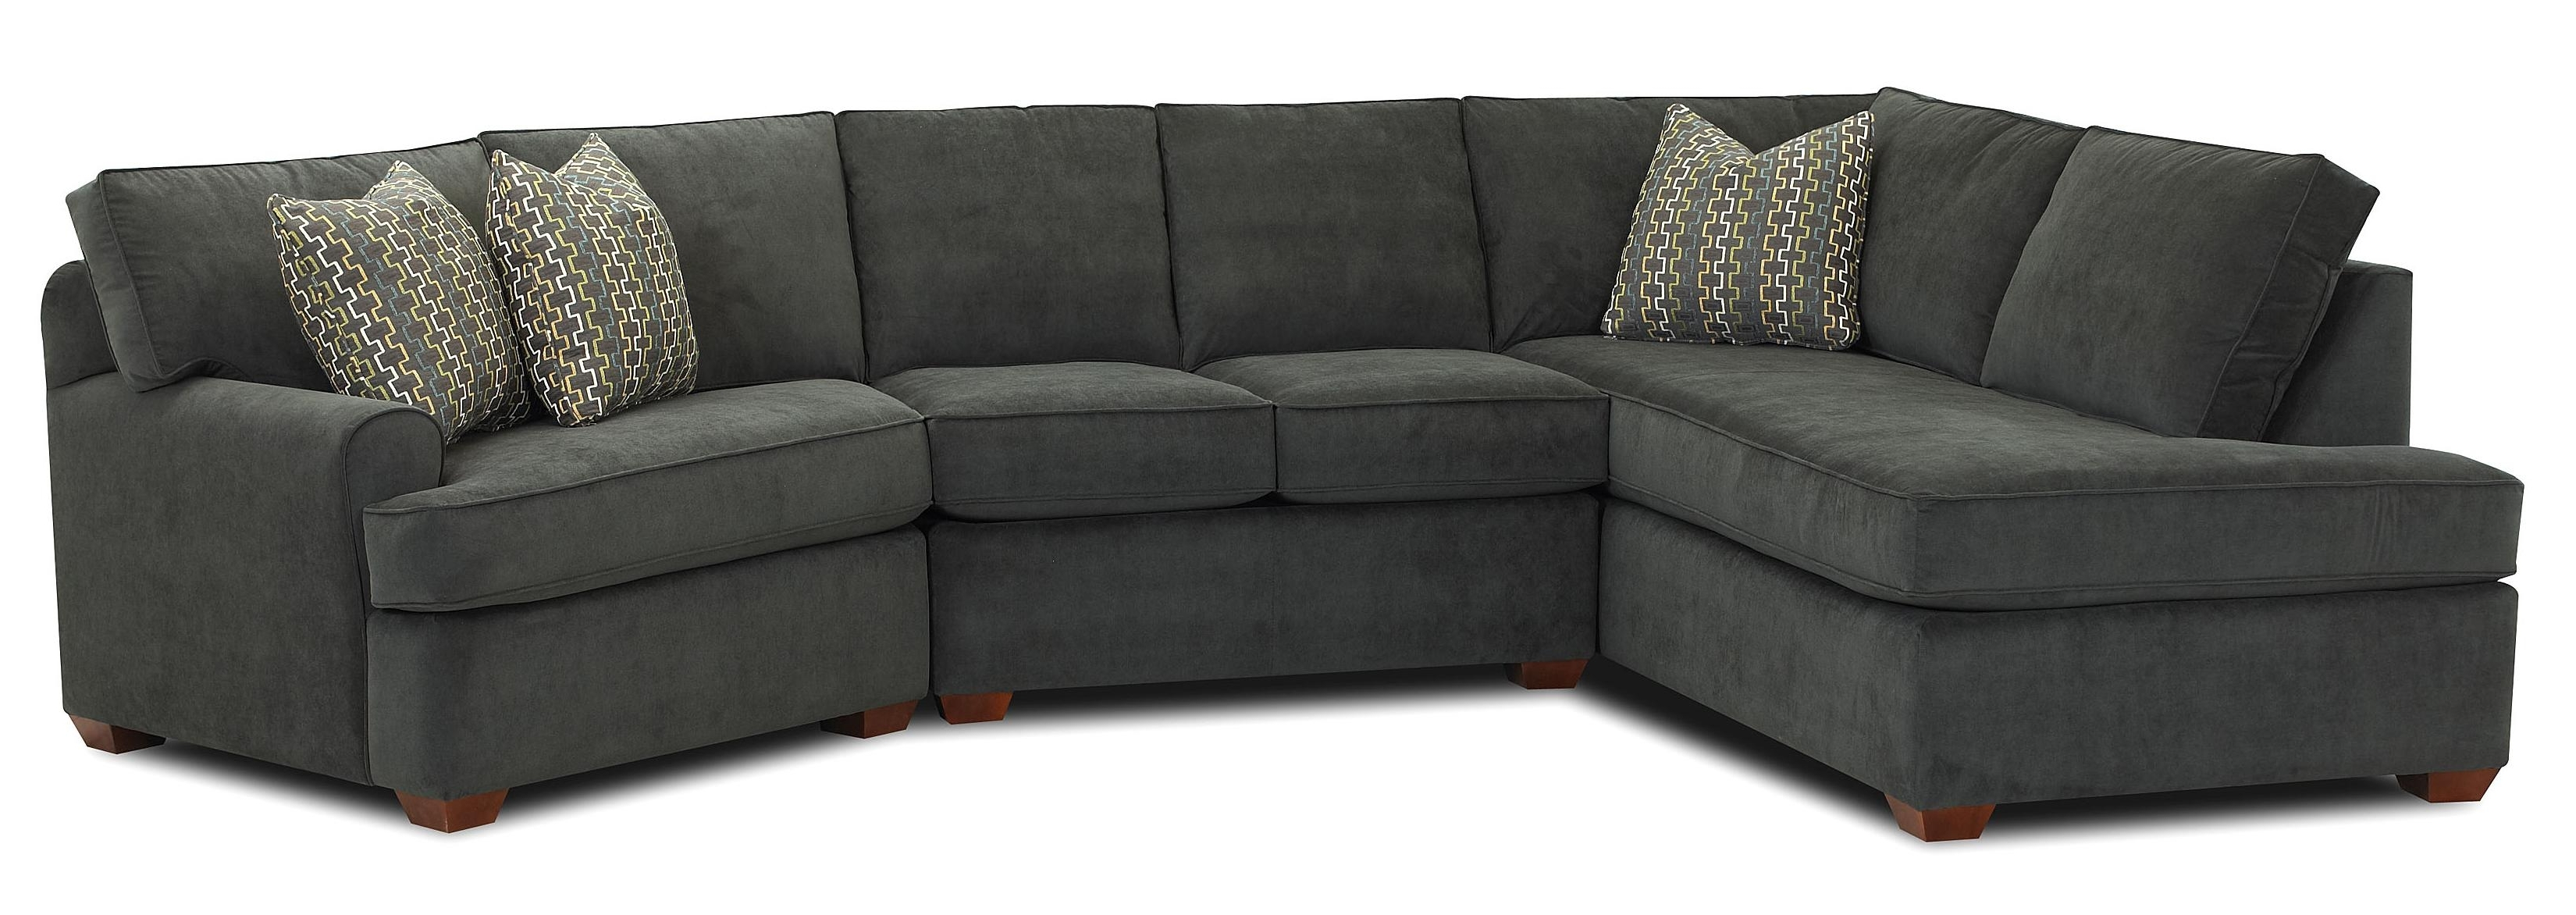 Most Popular Sectional Sofa Design: Amazing Left Sectional Sofa Left Chaise Inside Chaise Sectional Sofas (View 7 of 15)